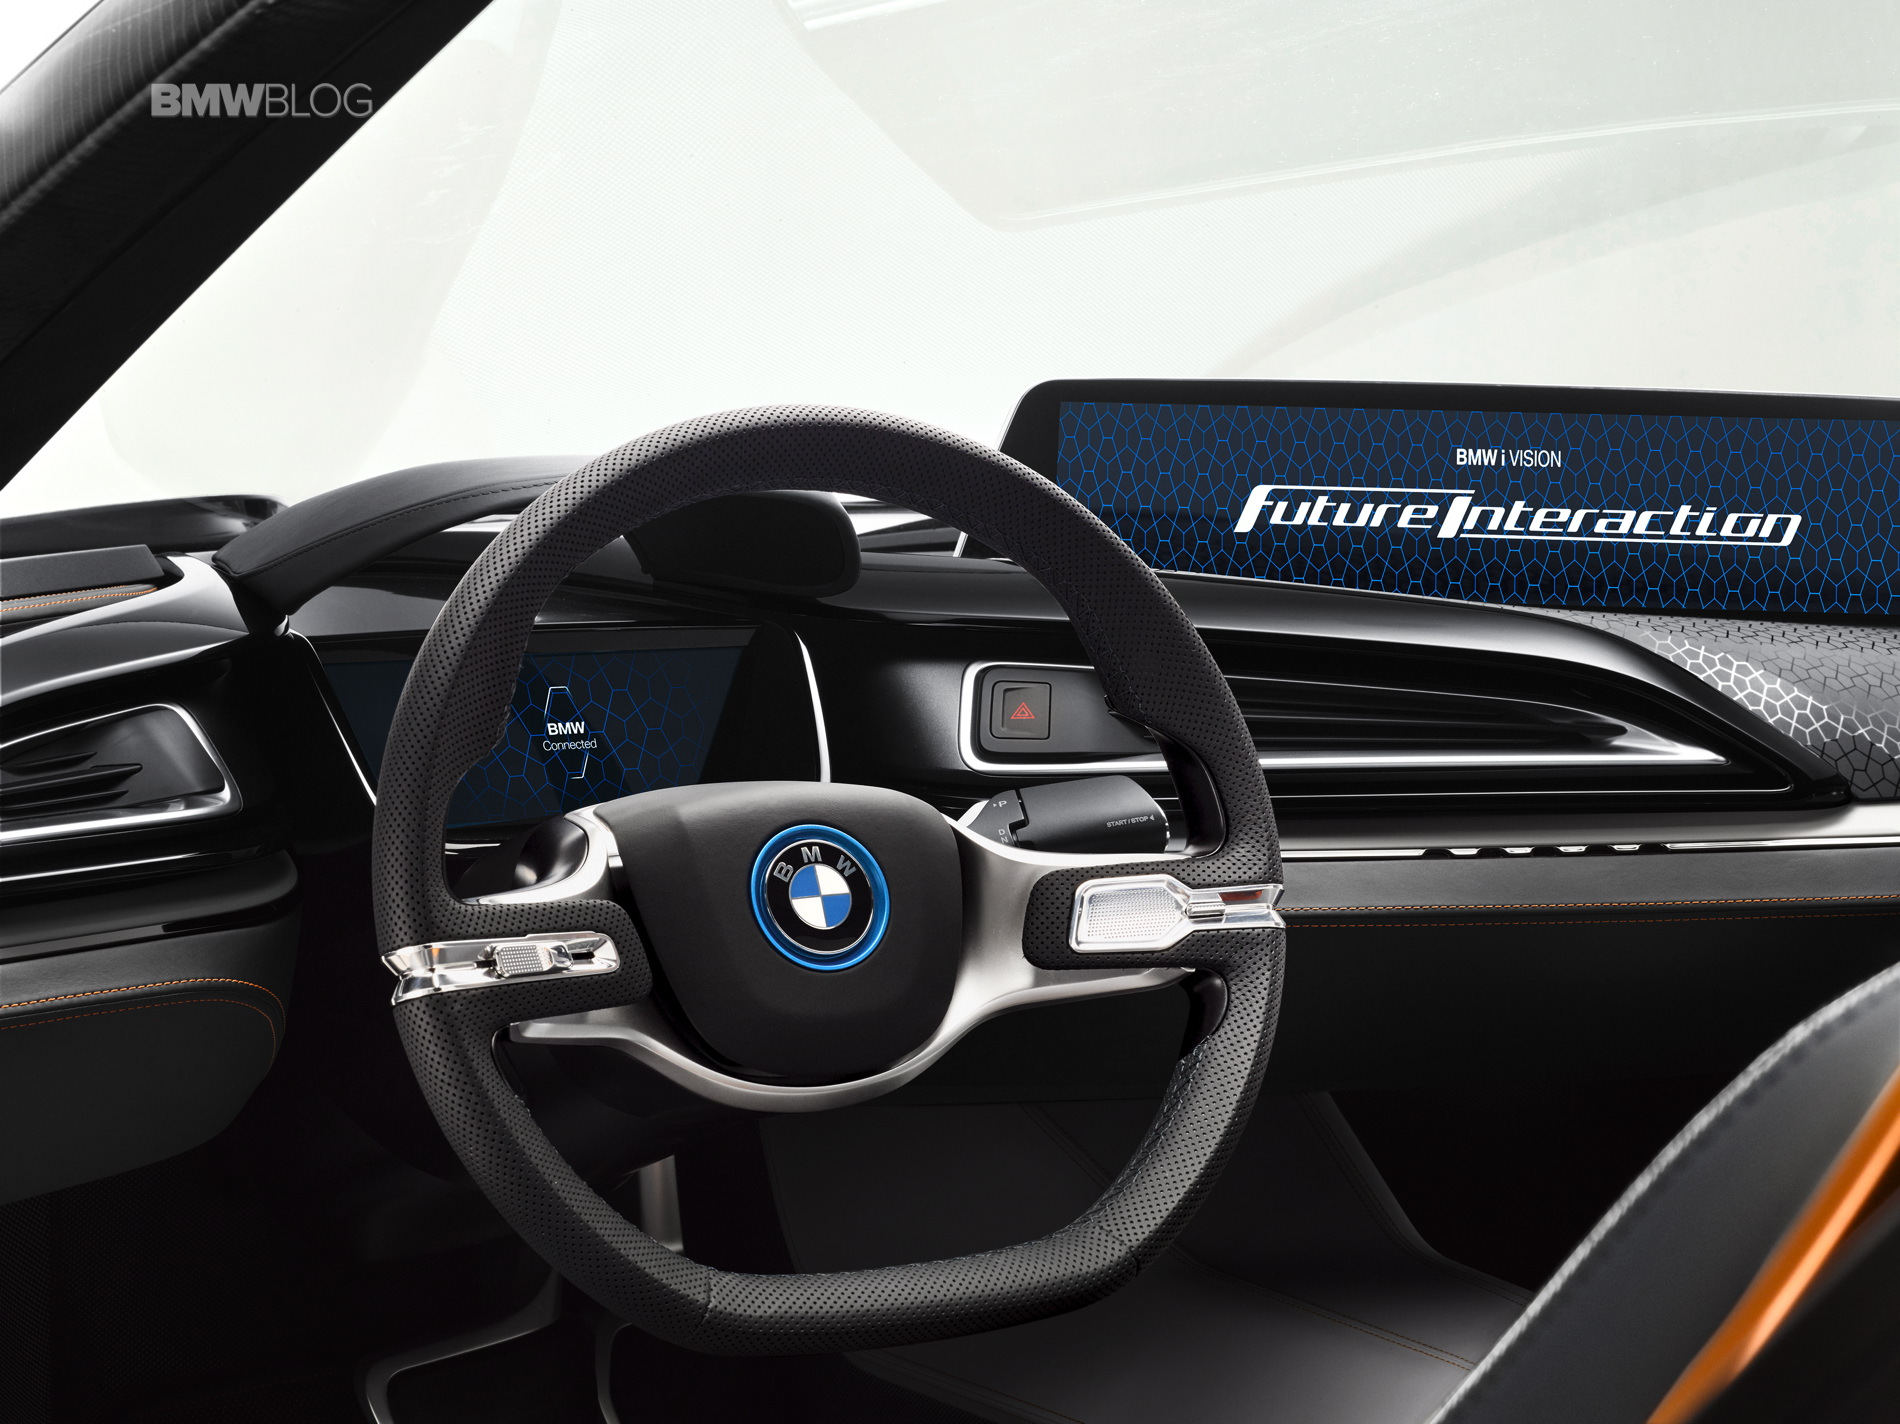 World Premiere Bmw I Vision Future Interaction